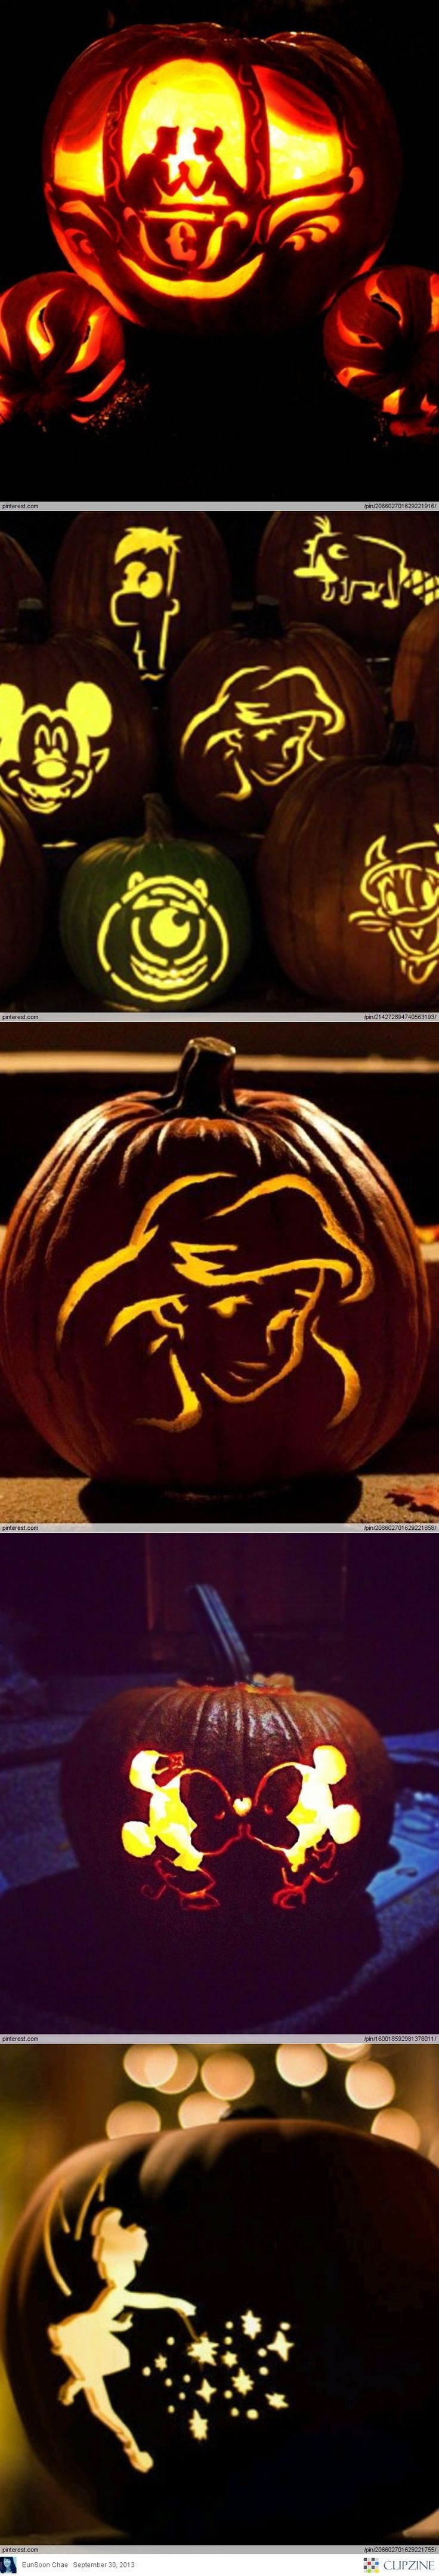 Best 25+ Pumpkin Carving Contest Ideas On Pinterest | Halloween Pumpkins,  Pumkin Carving And Halloween Pumpkin Carvings Part 75